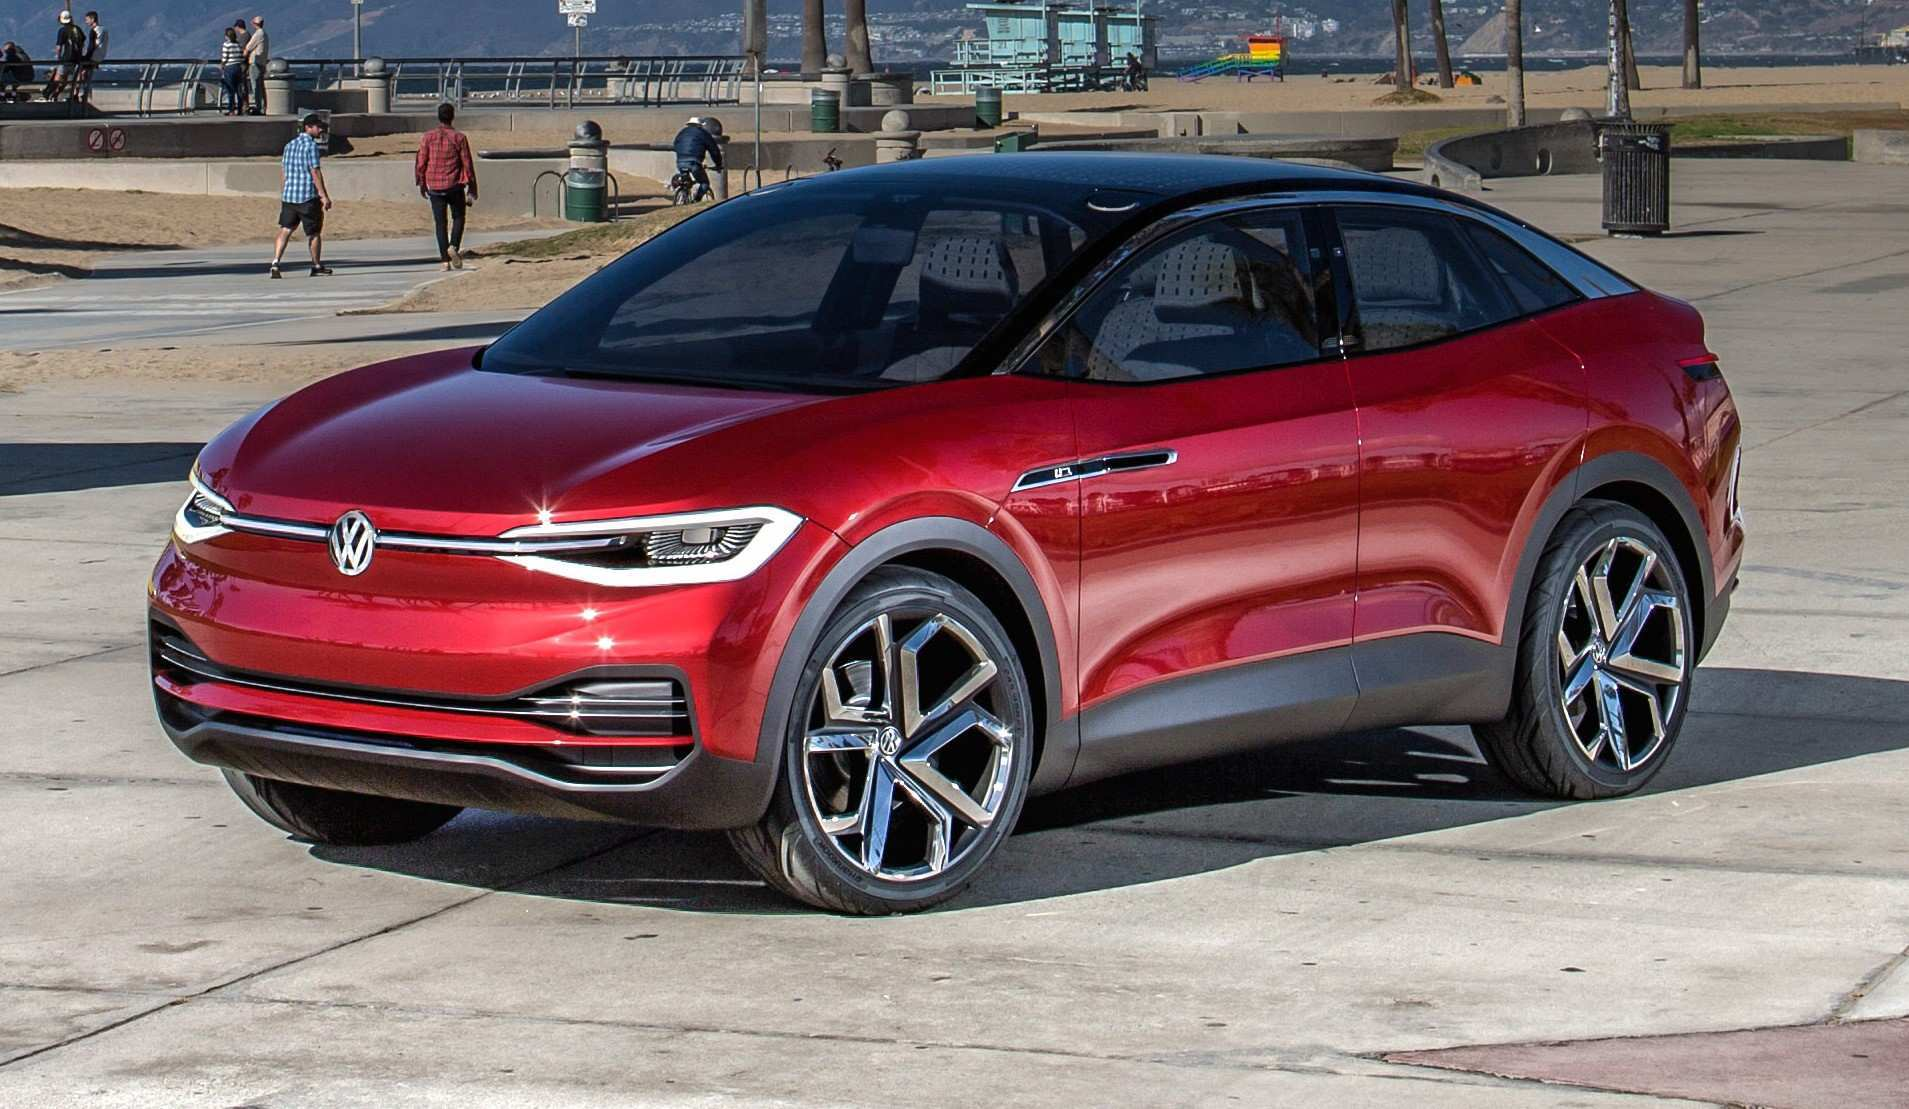 35 A Volkswagen I D Crozz 2020 Price And Release Date